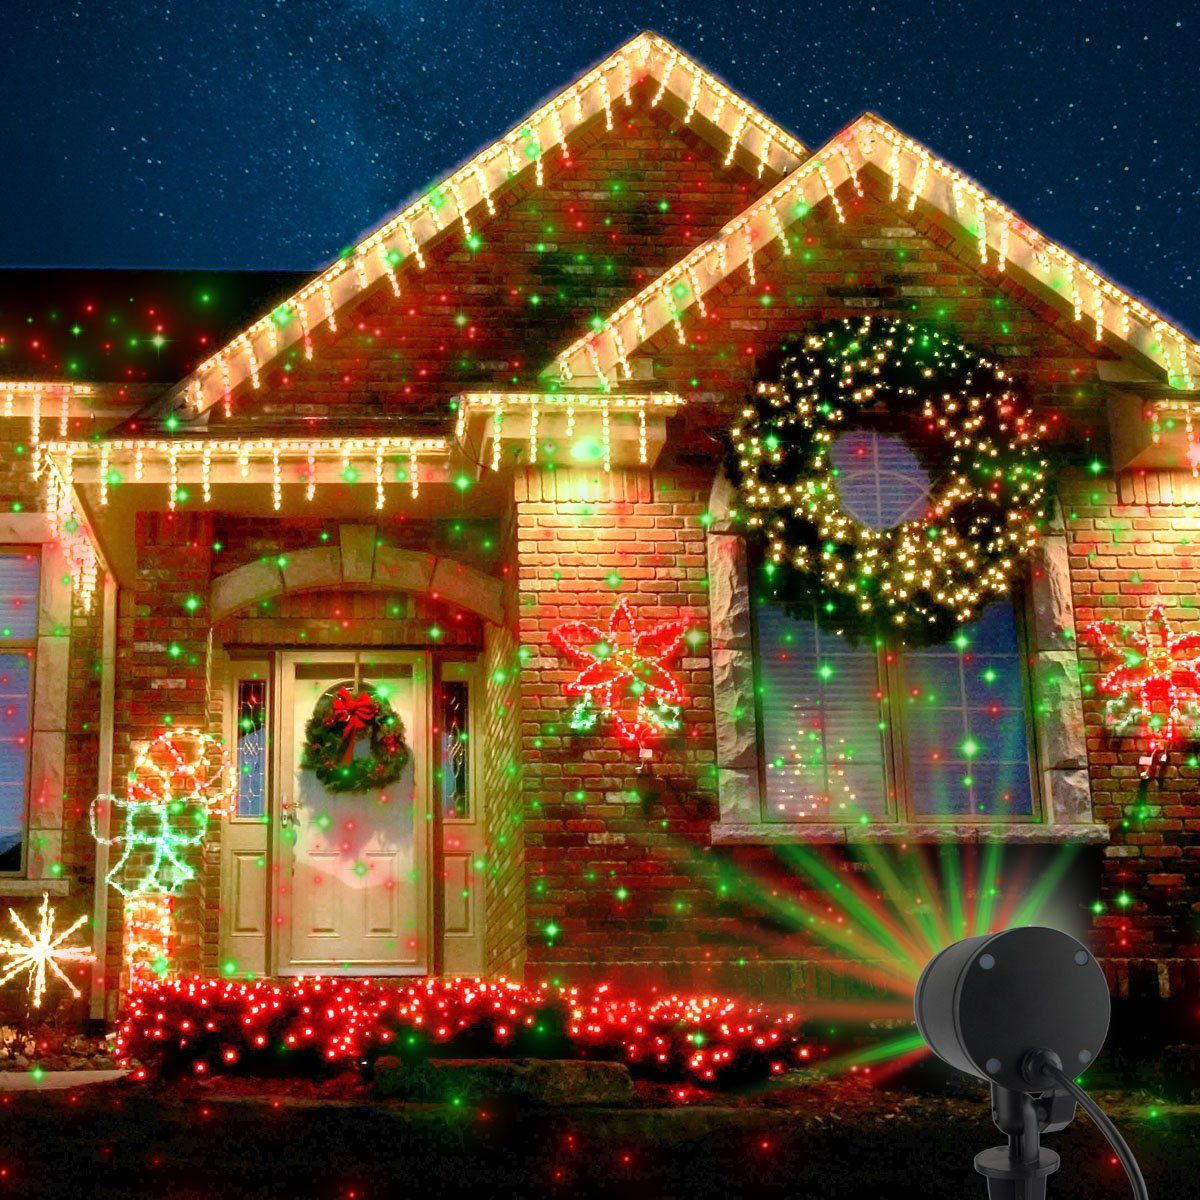 Halloween Decorations Starry Laser Lights Landscape